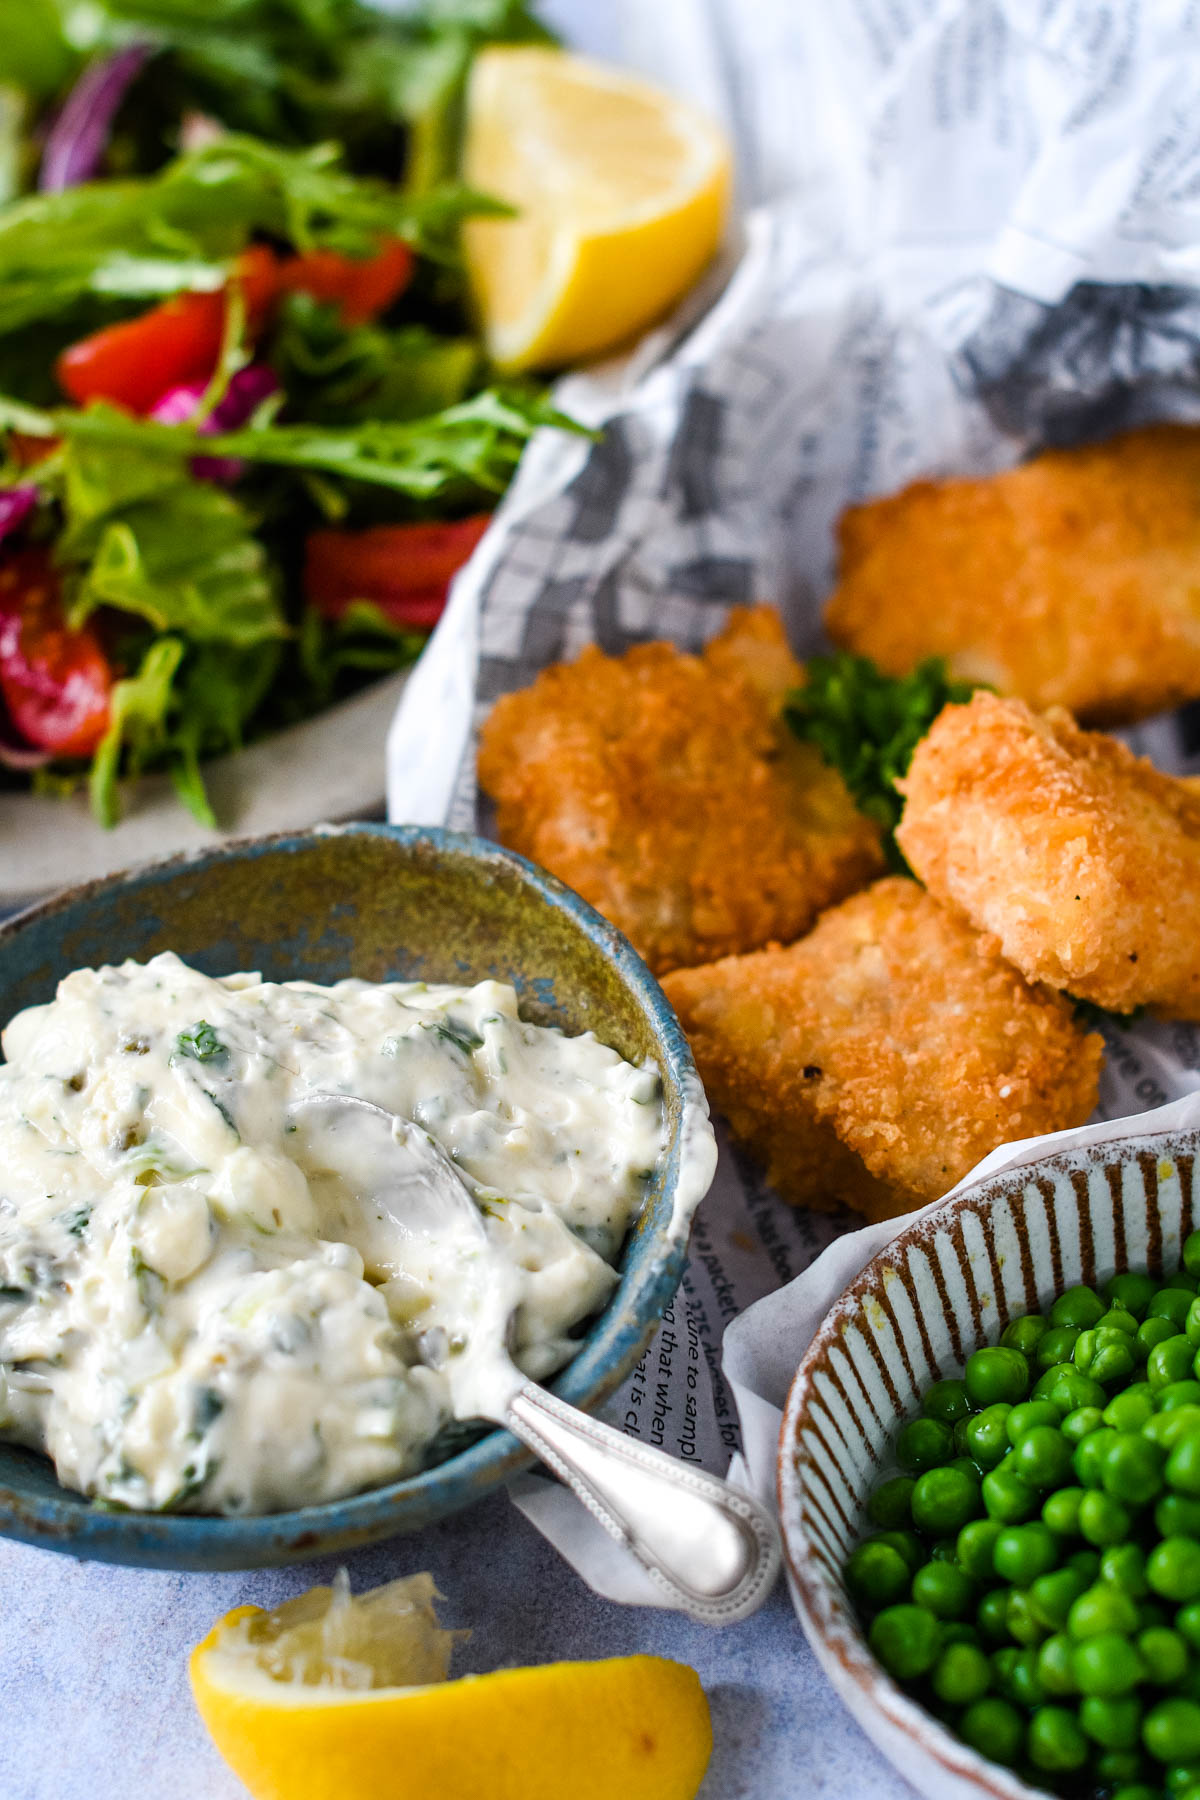 homemade tartare sauce with fish fingers and peas